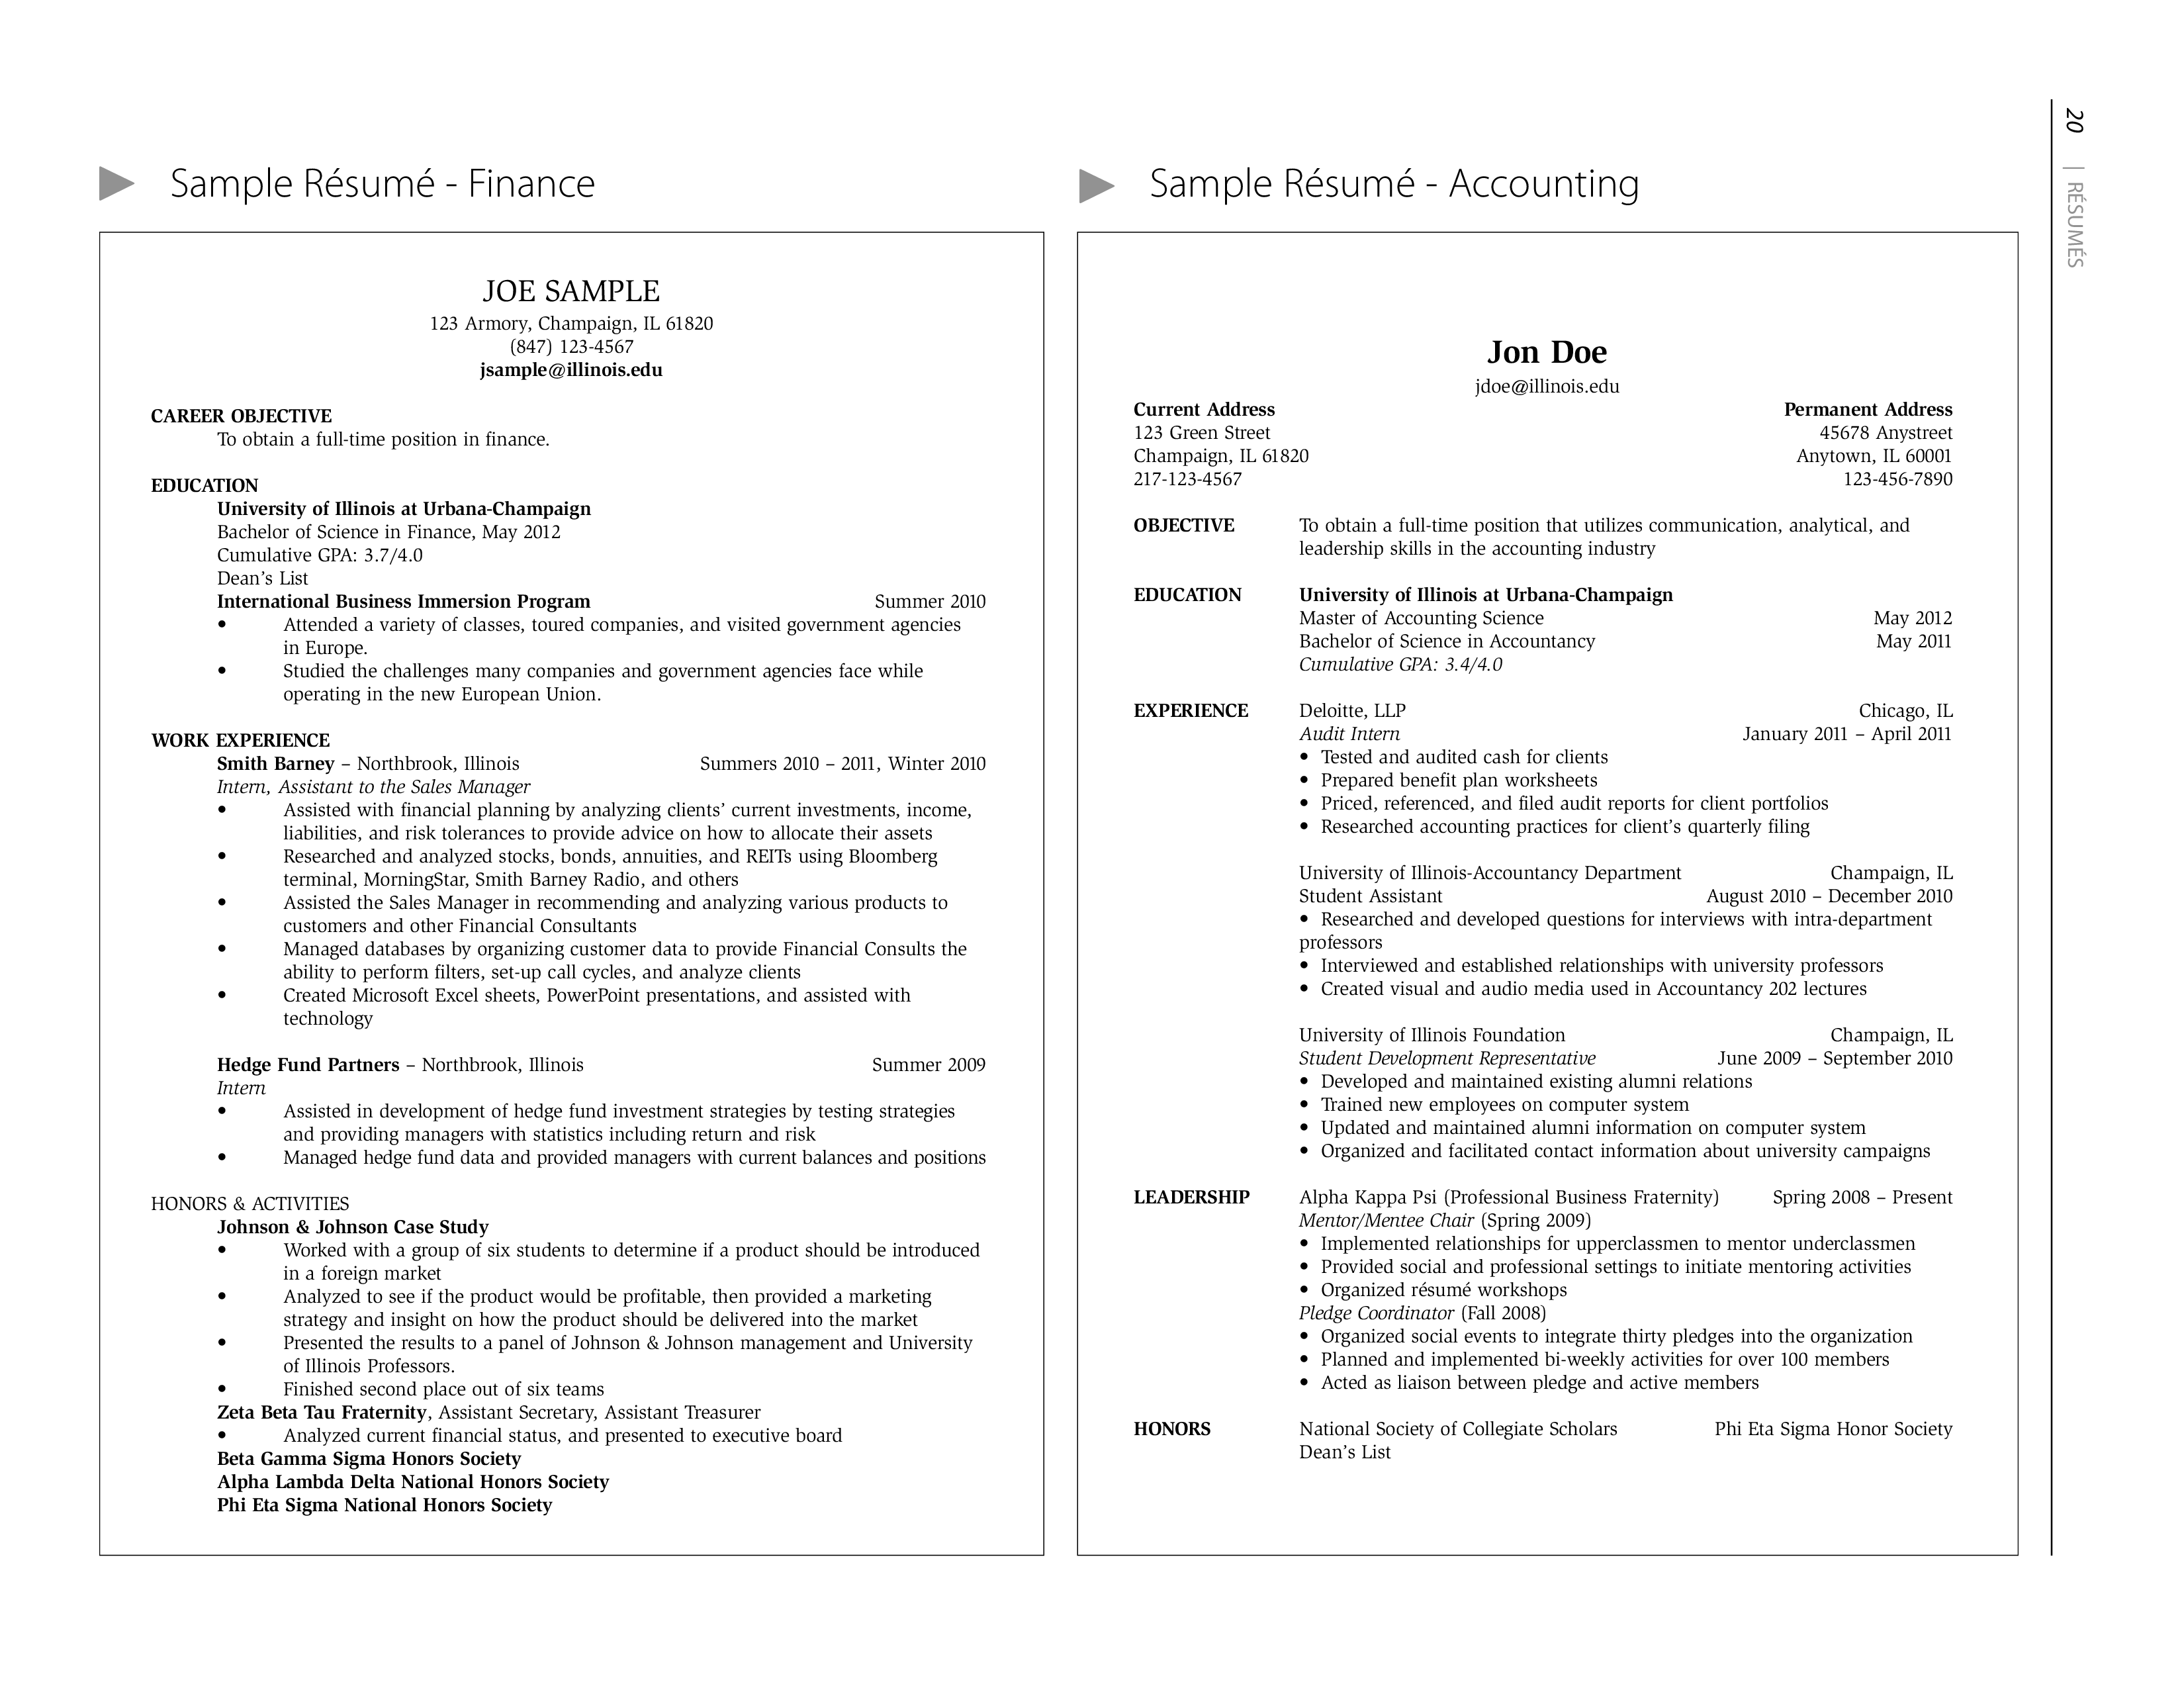 Accounting Agenda How To Draft An Accounting Agenda Download This Accounting Agenda Template Now Cover Letter For Resume Agenda Template Resume Objective